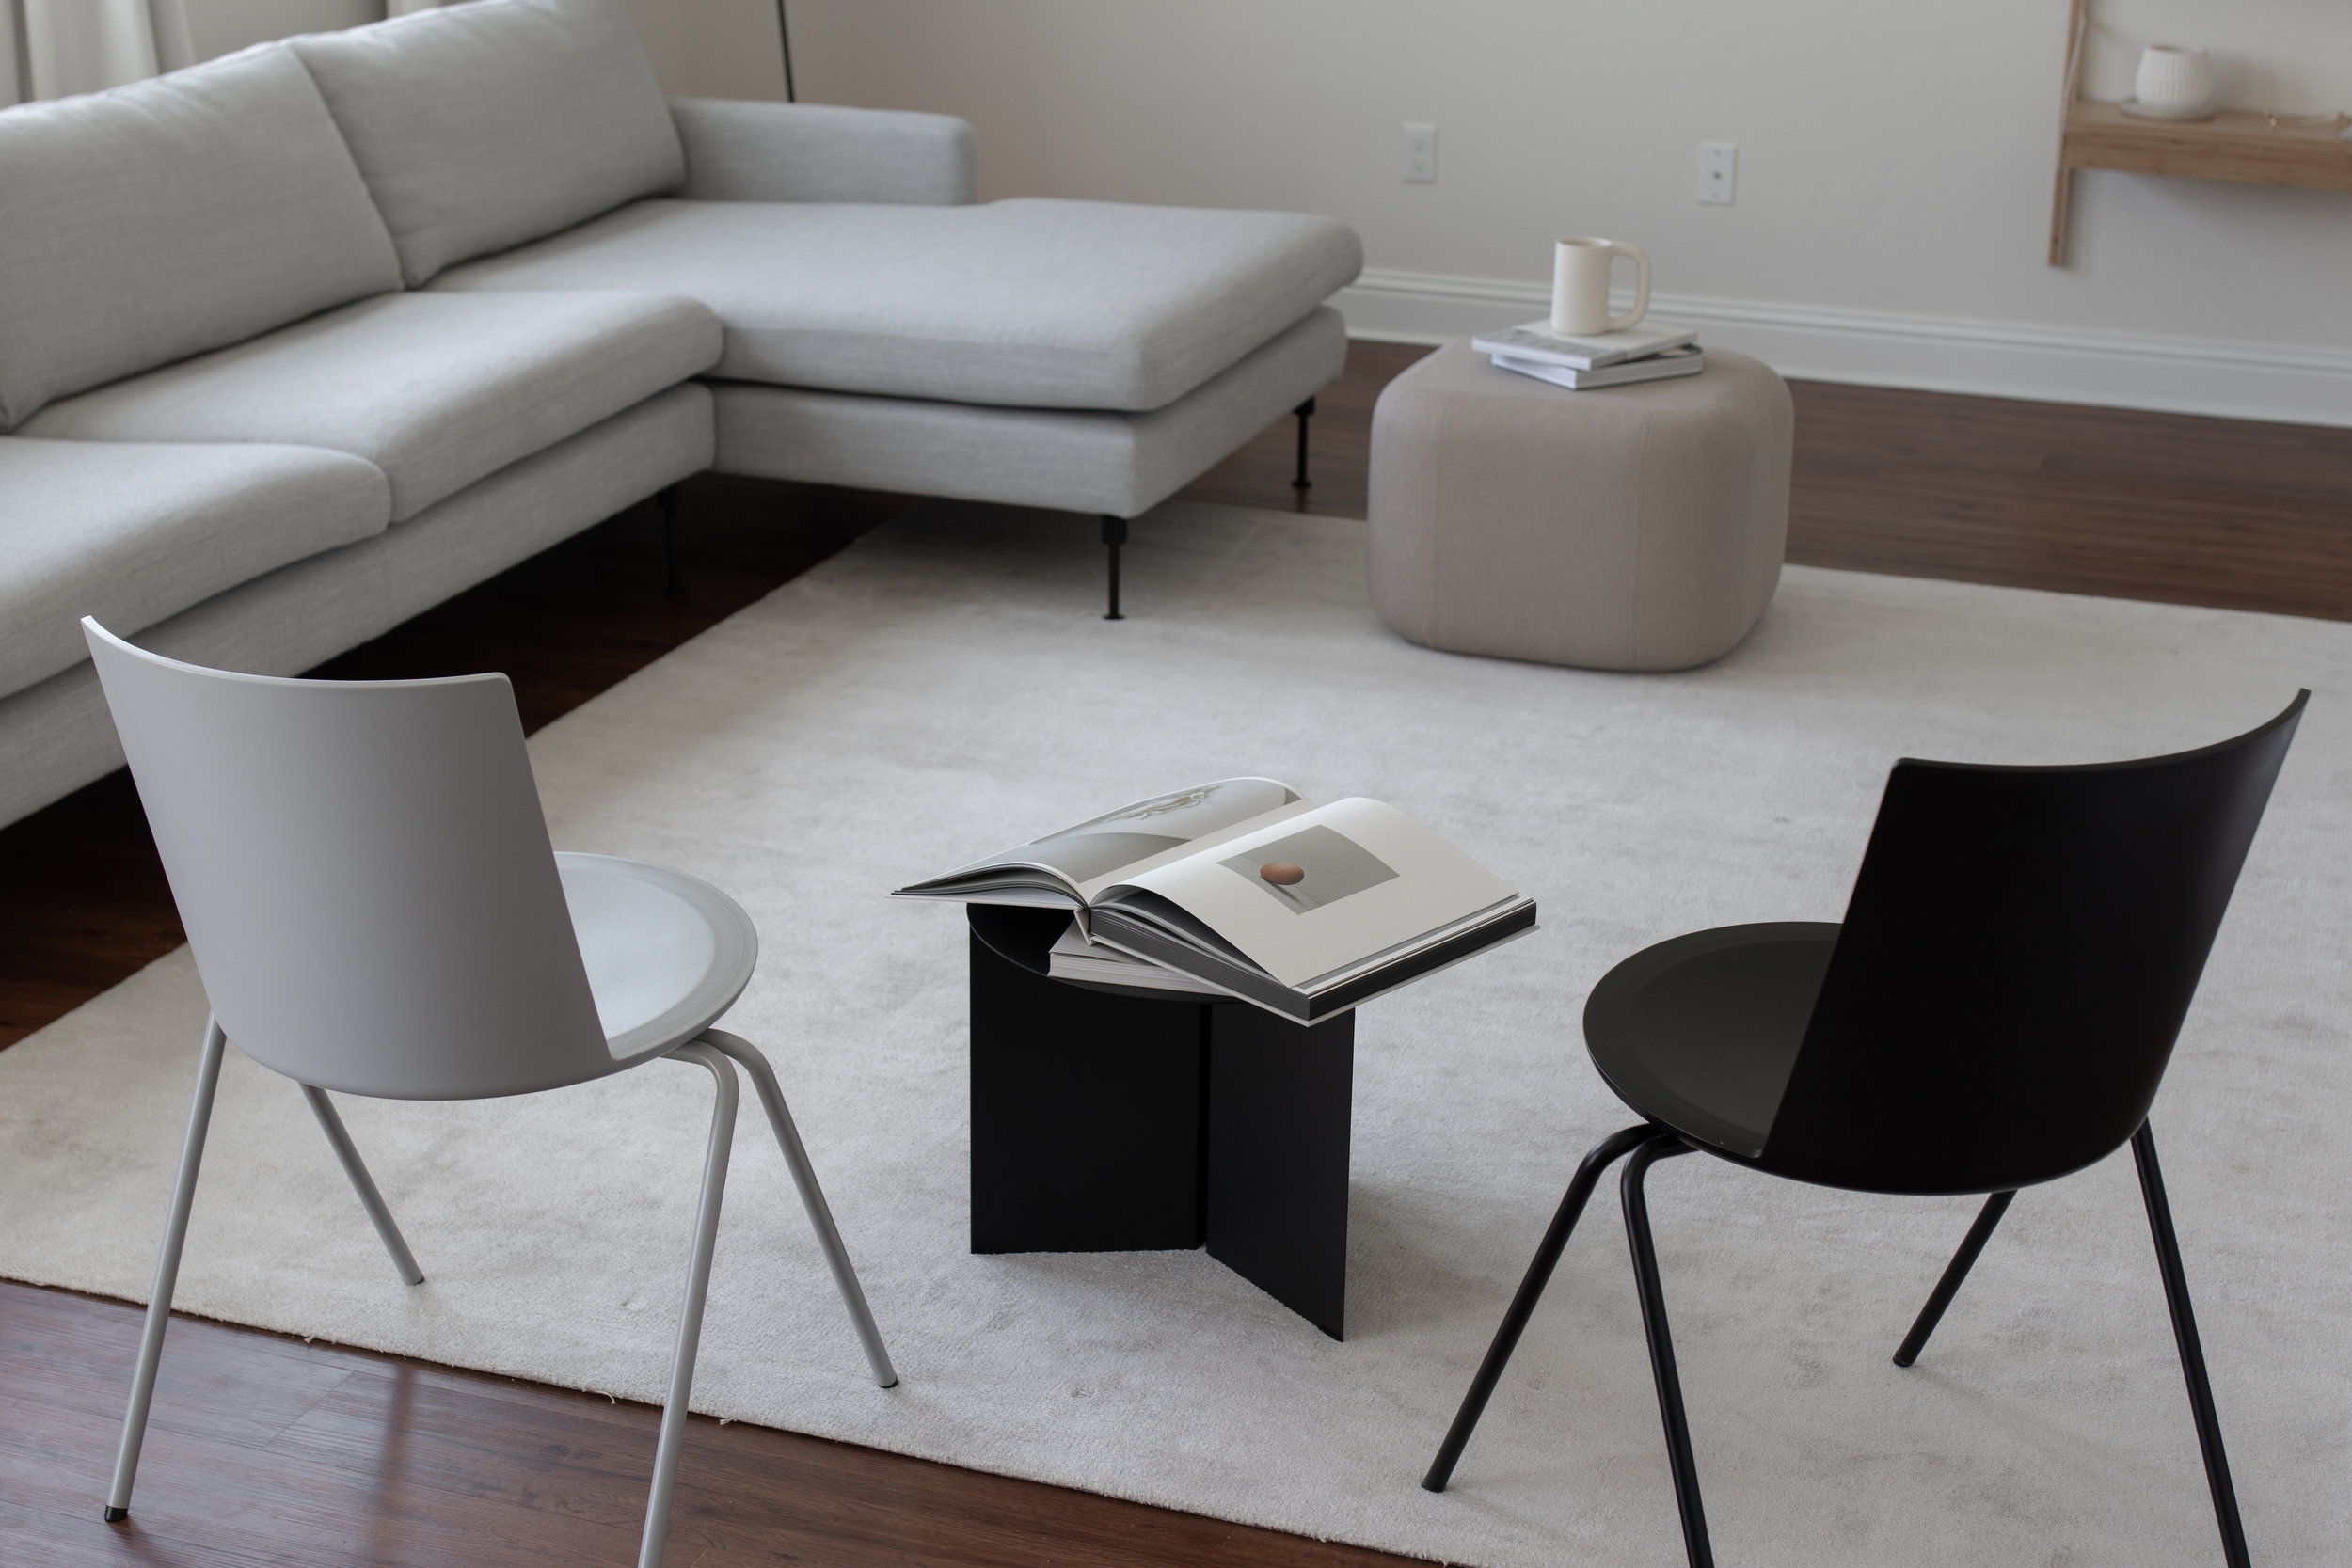 Living Room with Fredericia Chairs